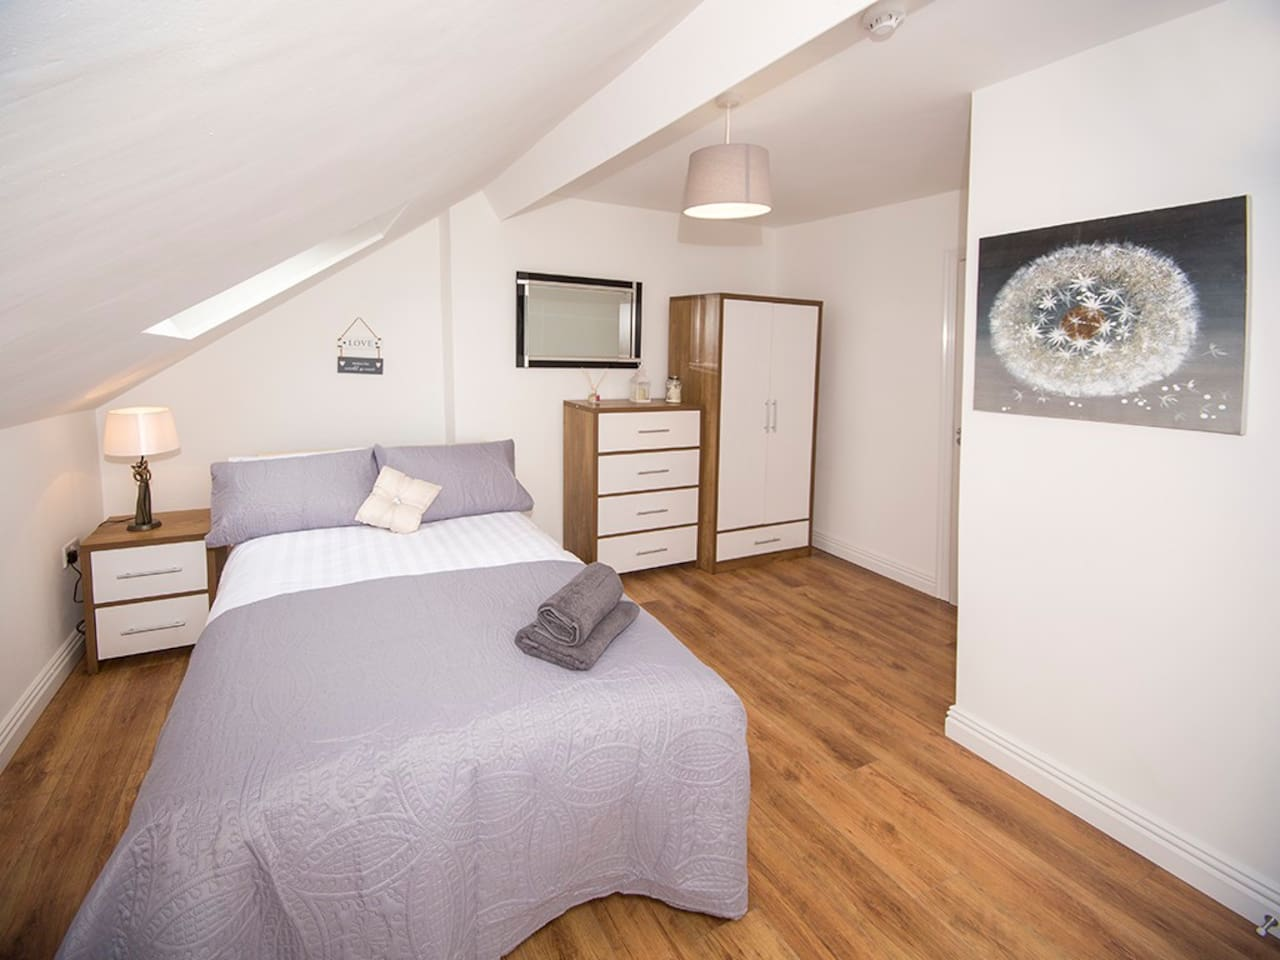 Six double bedrooms all en site shower rooms. Fully equipped  kitchen and two dining tables providing seating for up to 12 guests. Free wifi, fresh towels and lined provided. Great access to the city, SSE arena and the Titanic quarter.